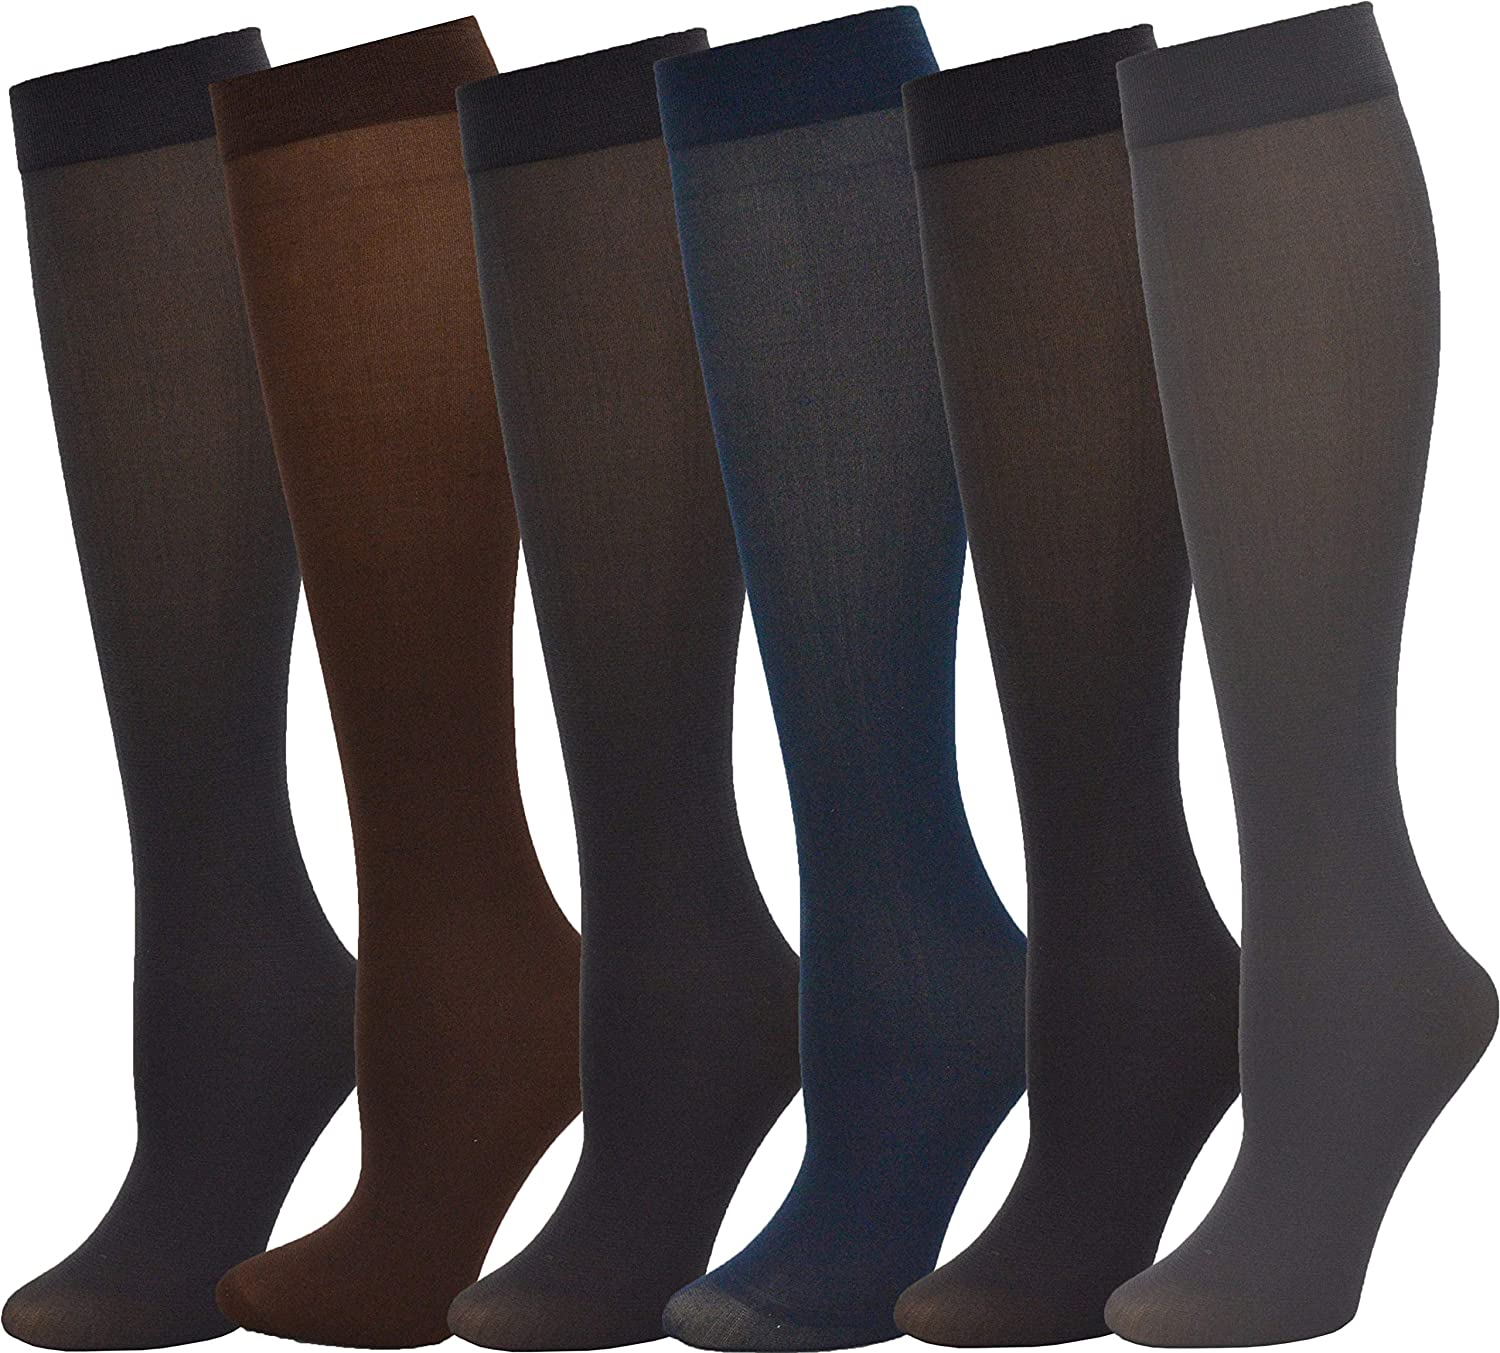 Queen Size Trouser Socks for Women 6 Pairs Plus Stretchy Opaque Knee High Dress Sock